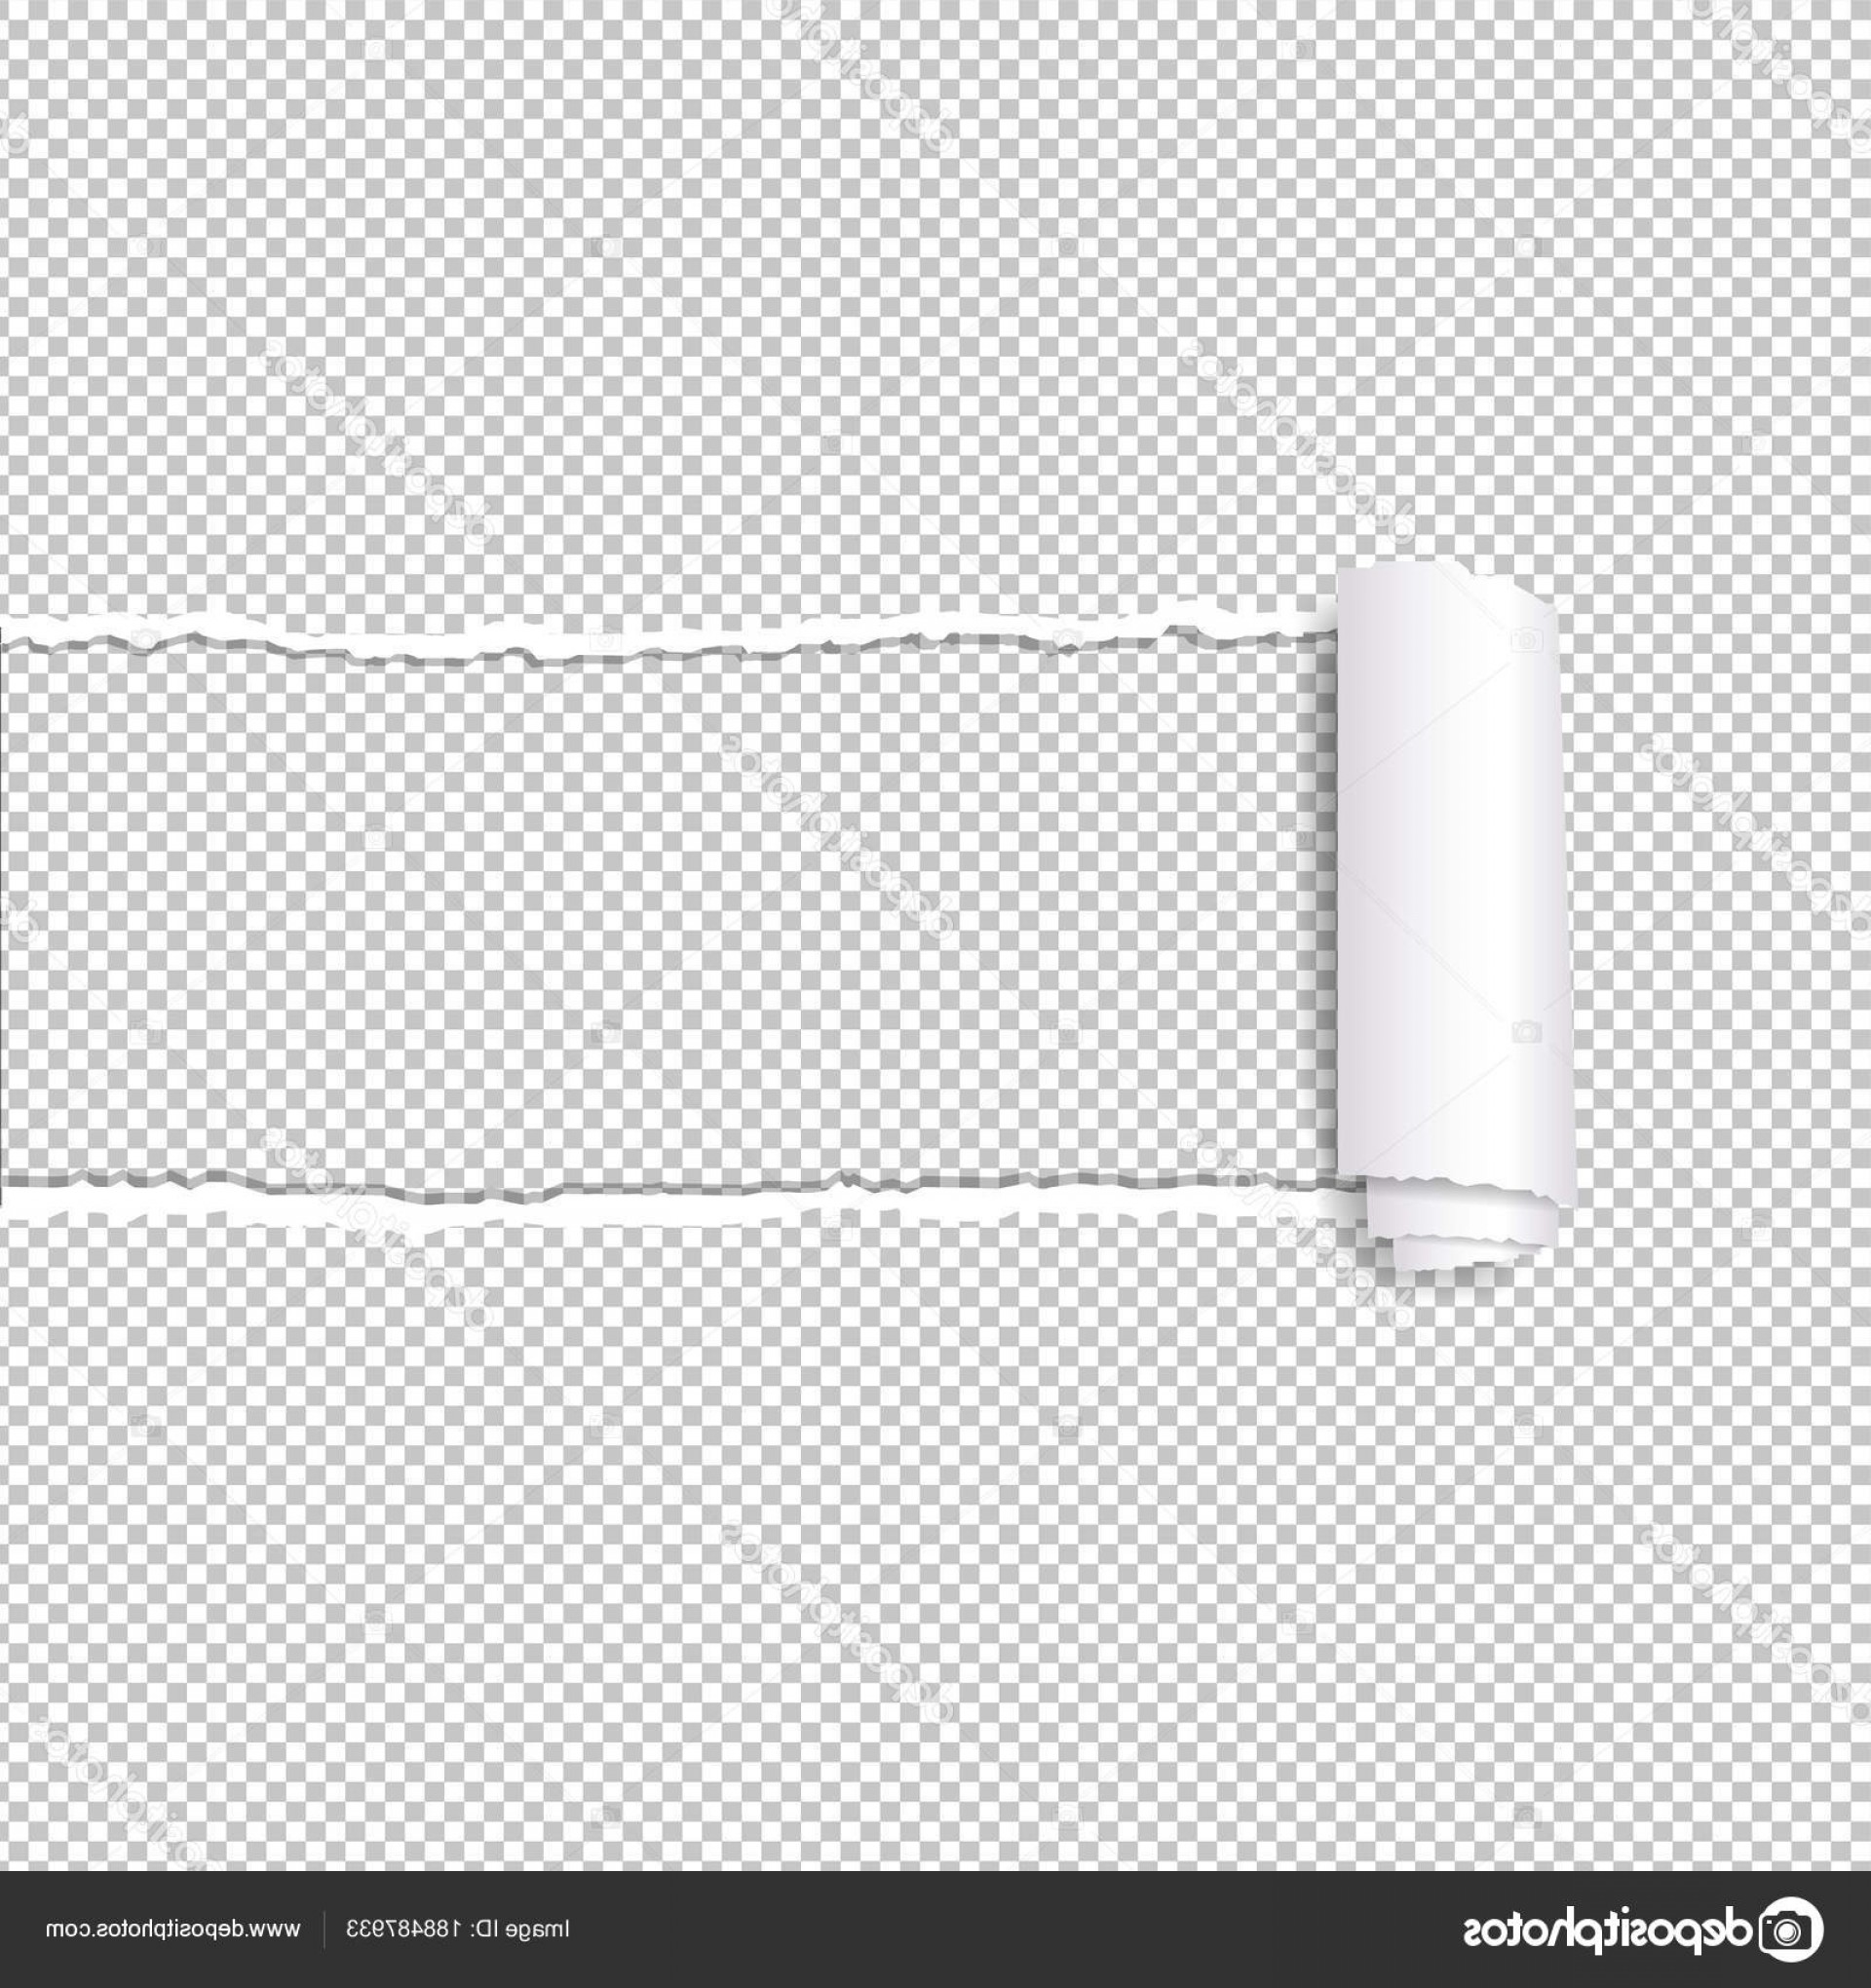 Vector Tear Away: Stock Illustration Torn Paper Edge Transparent Background